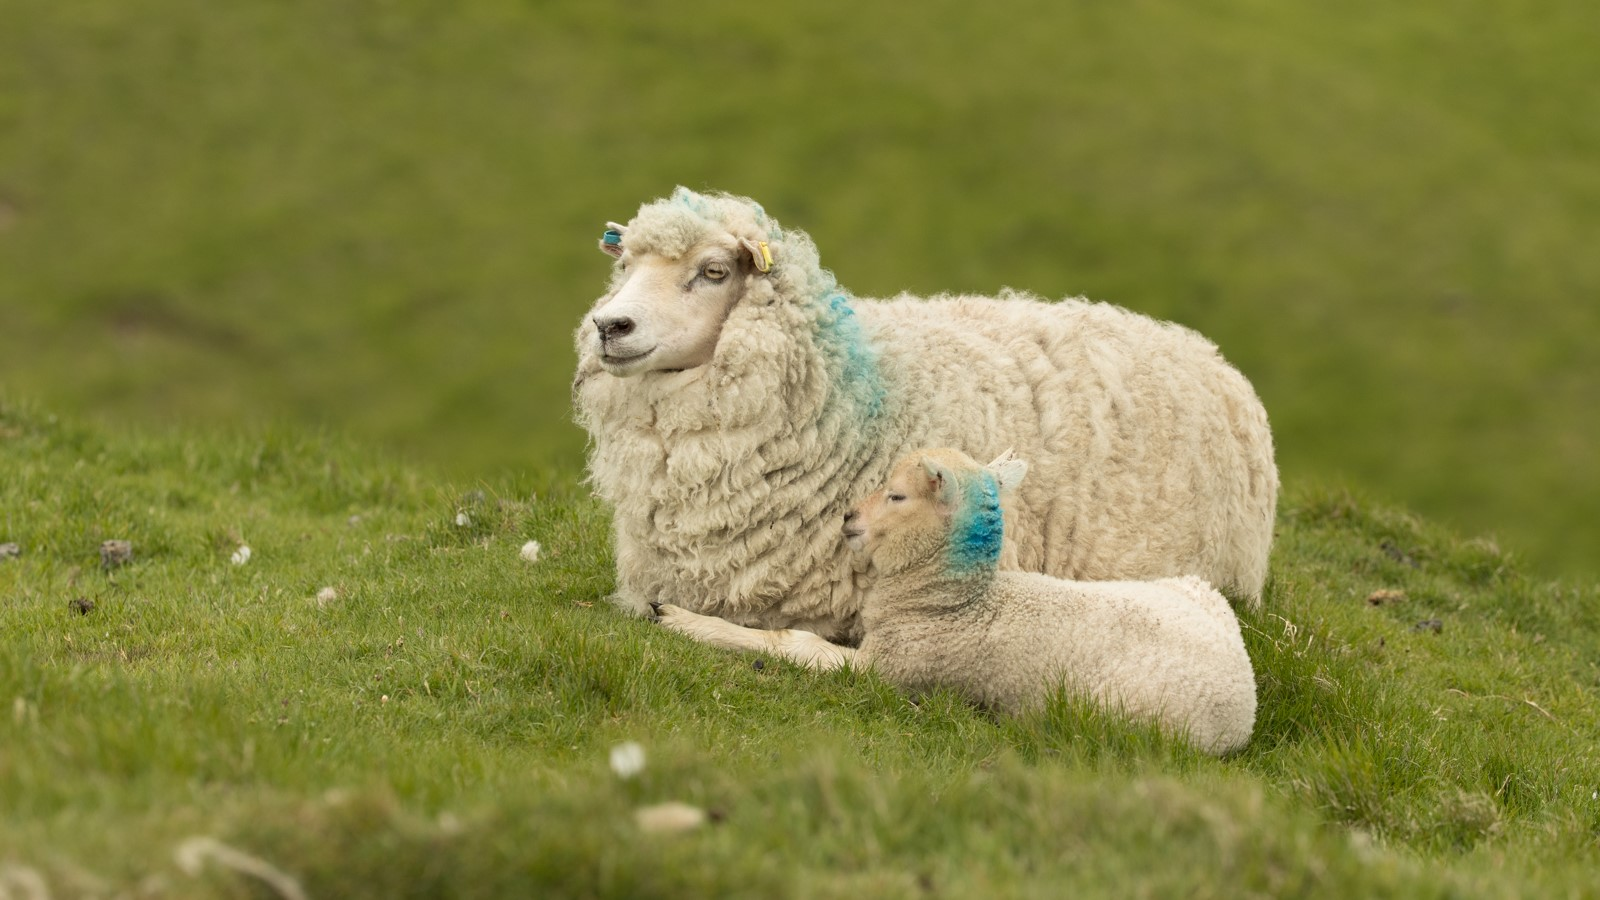 Cool sheep